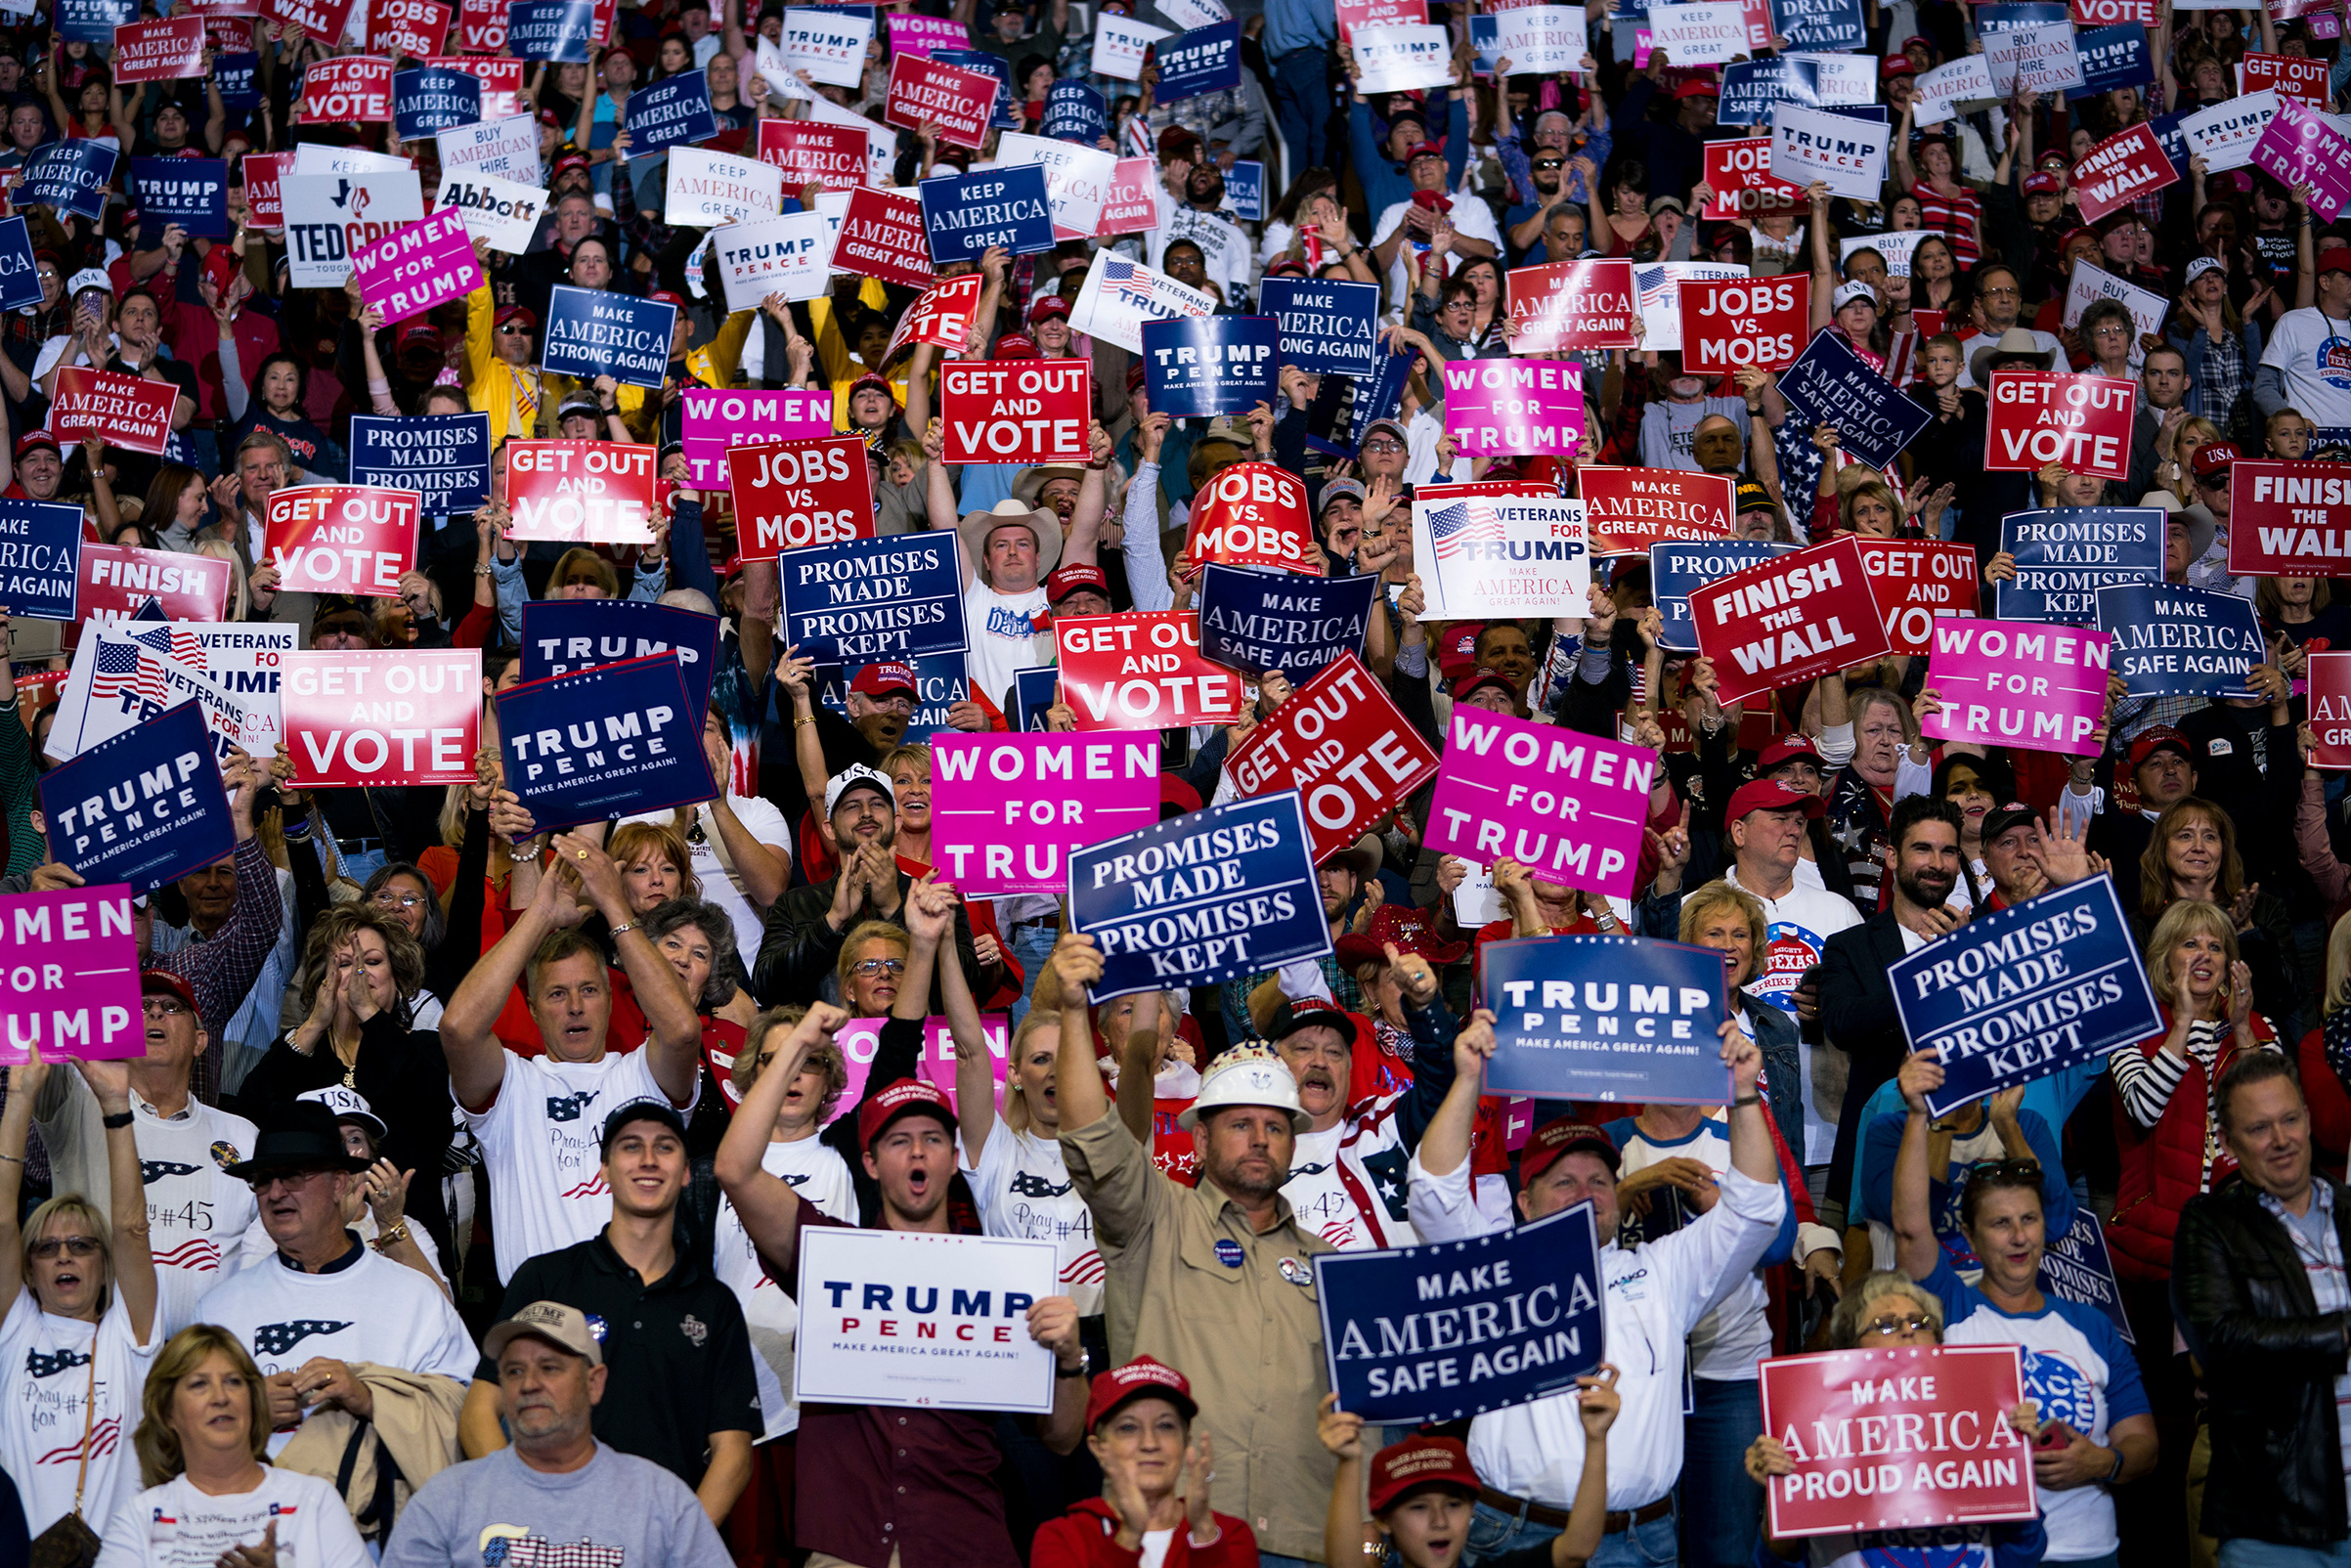 Supporters of President Donald Trump during a campaign rally for Sen. Ted Cruz in Houston, Oct. 22, 2018.